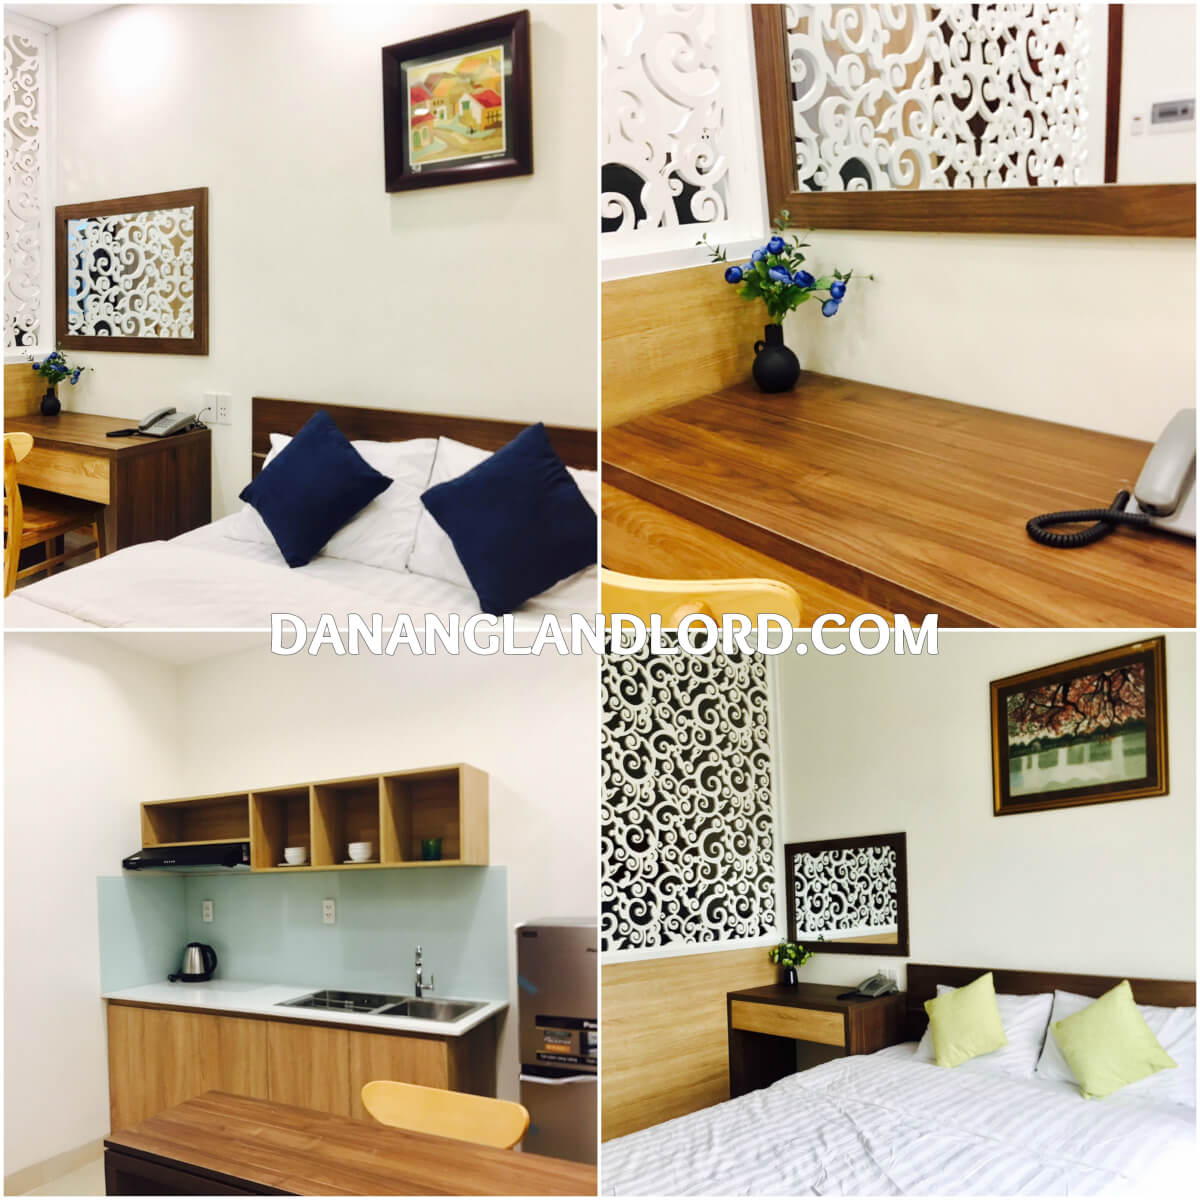 Studio 1 Bedroom Apartment For Rent Pham Van Dong Beach View Dt1s Da Nang Landlord